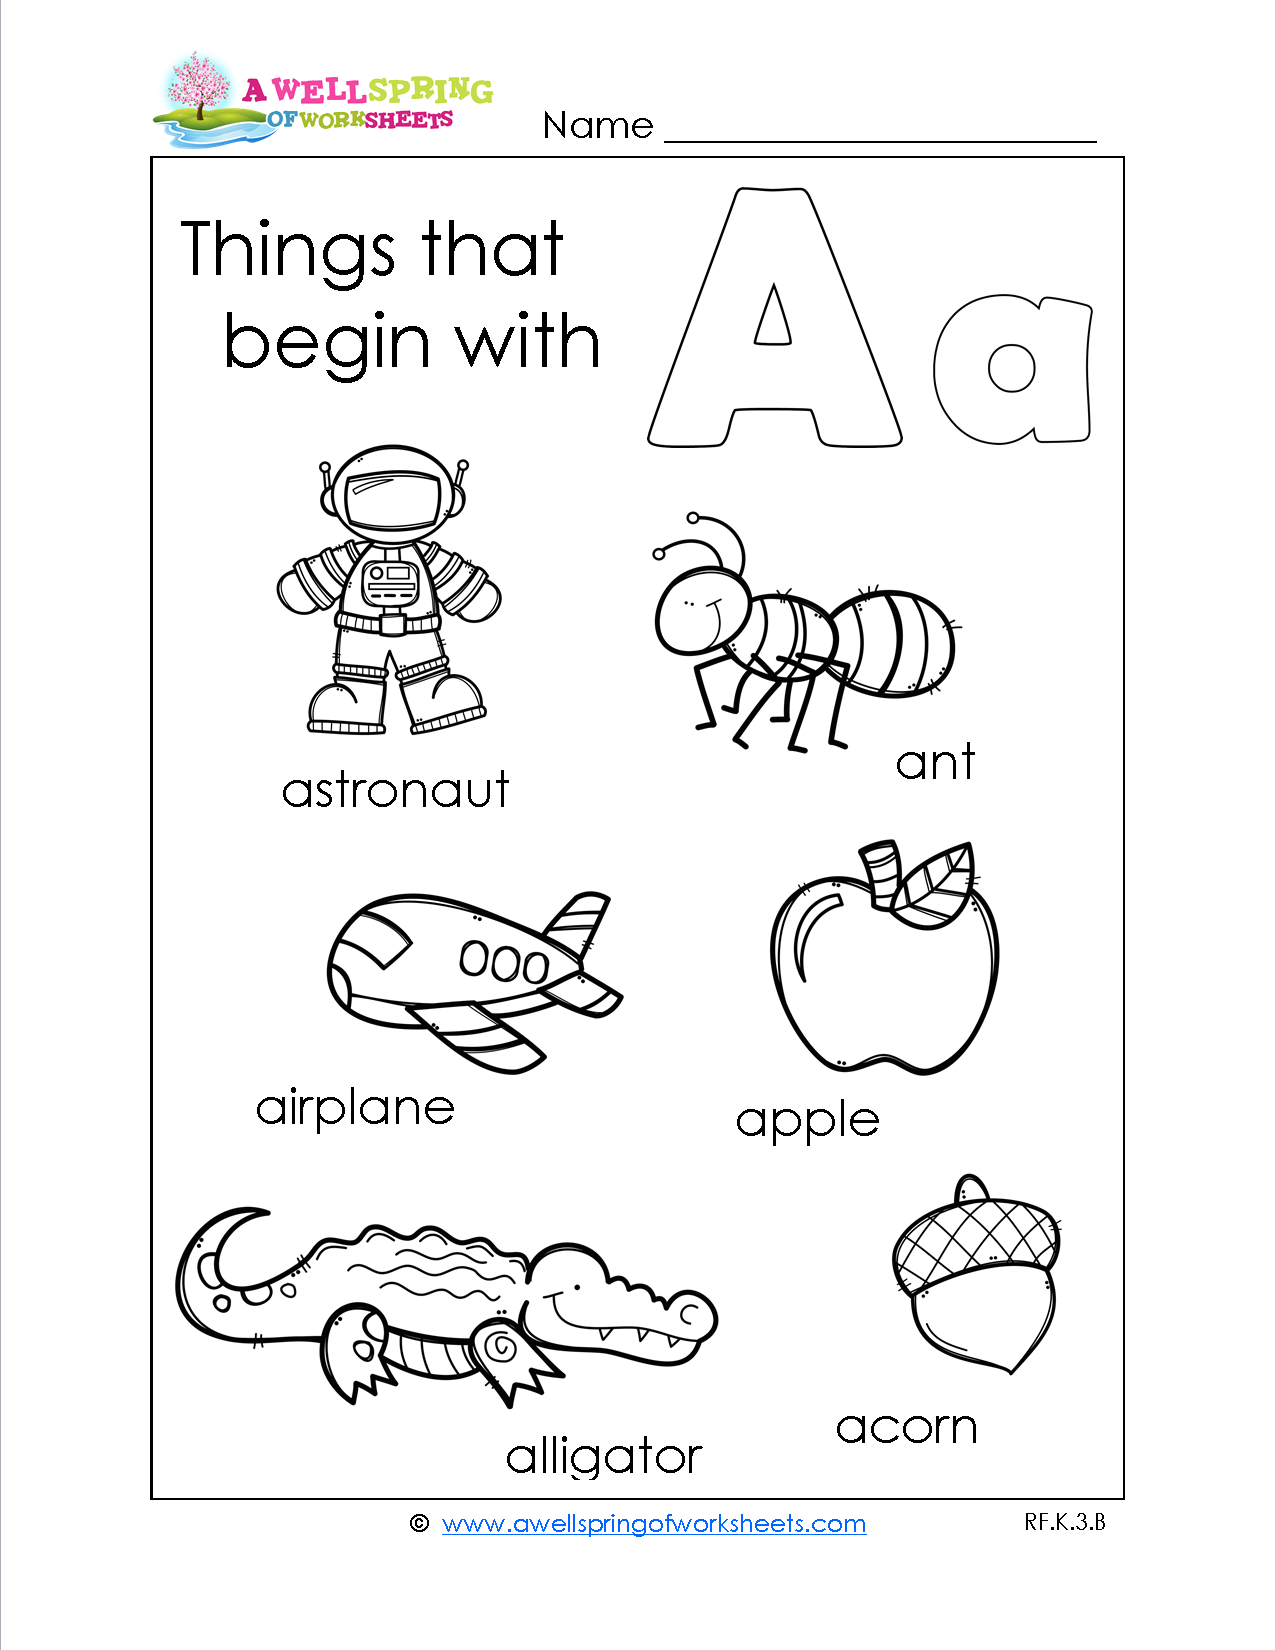 worksheet A-z Worksheets things that begin with a z these worksheets are great compliment to your alphabet letter